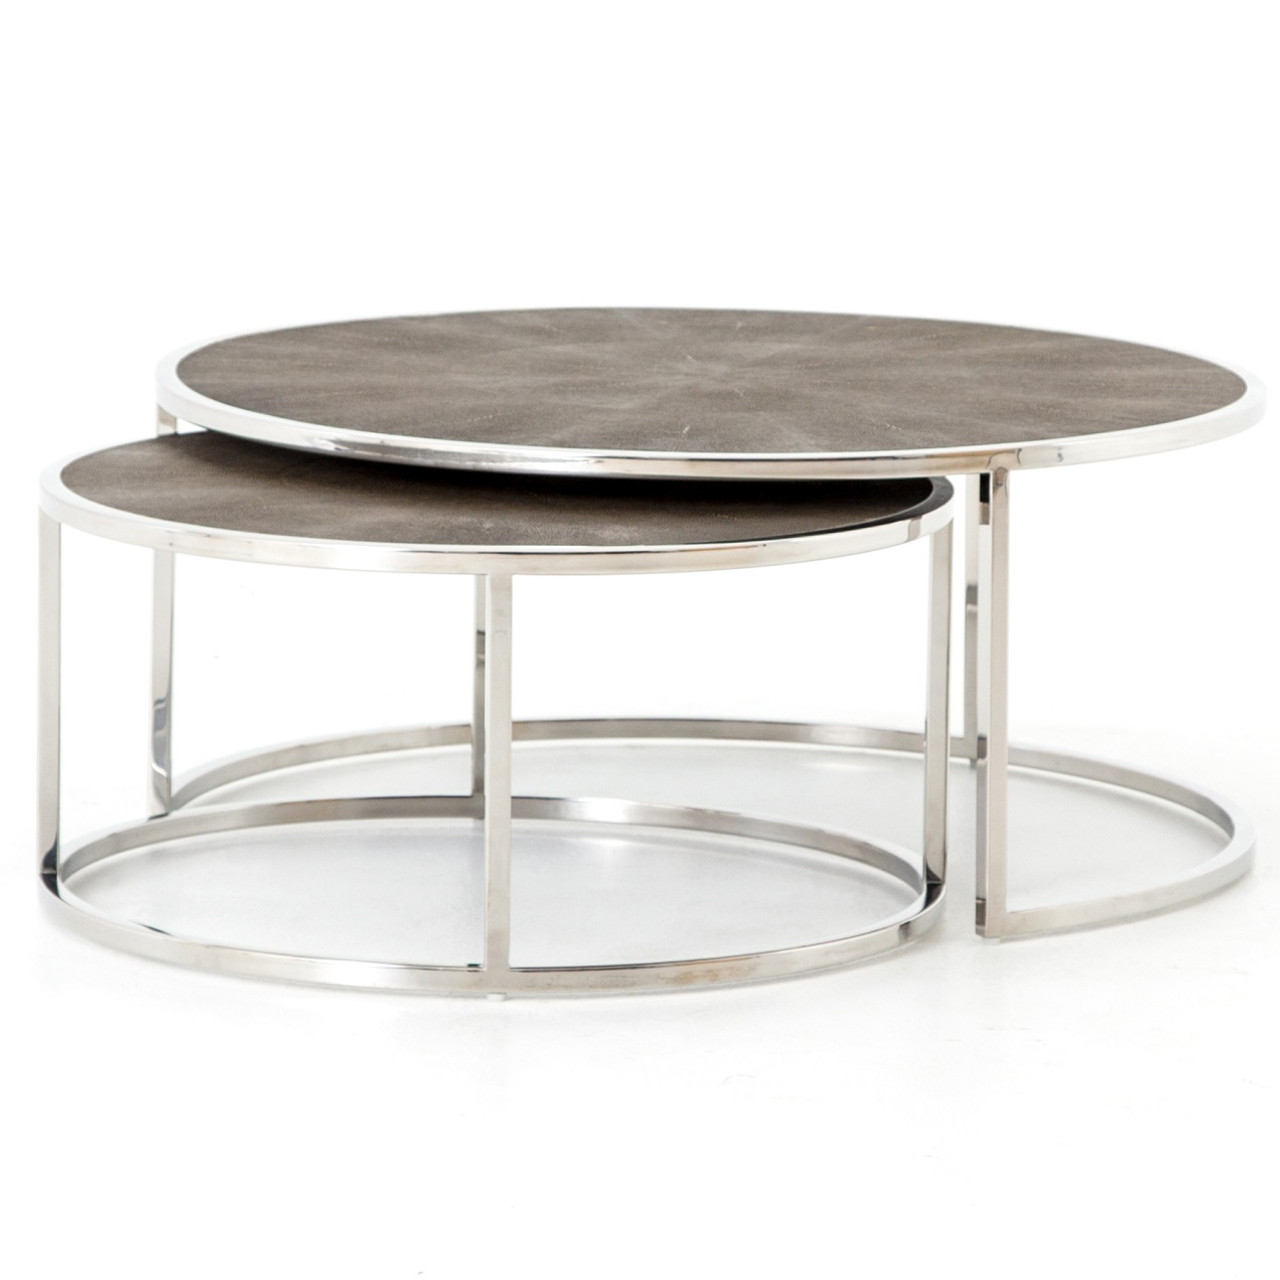 Brand new Hollywood Shagreen Nesting Coffee Tables - Stainless Steel | Zin Home EN91